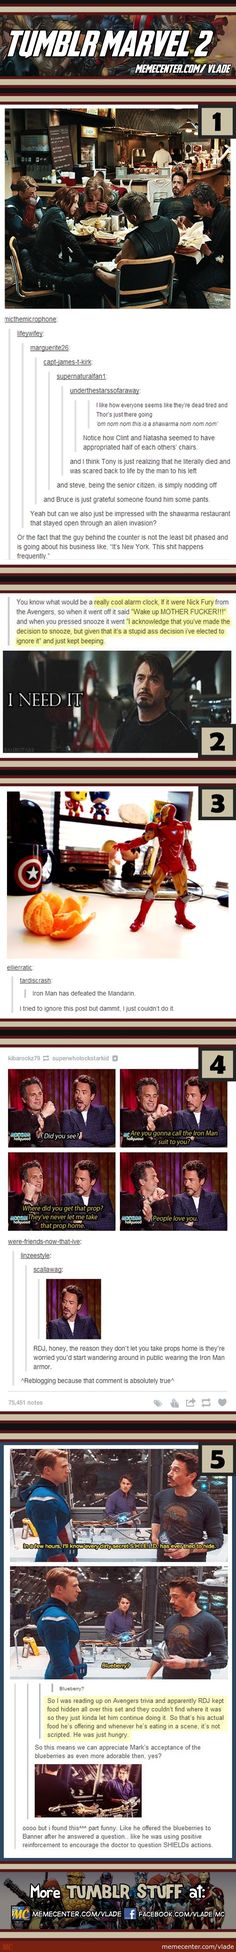 Tumblr Marvel #2...I apologize in advance for the language, but some of these are funny lol